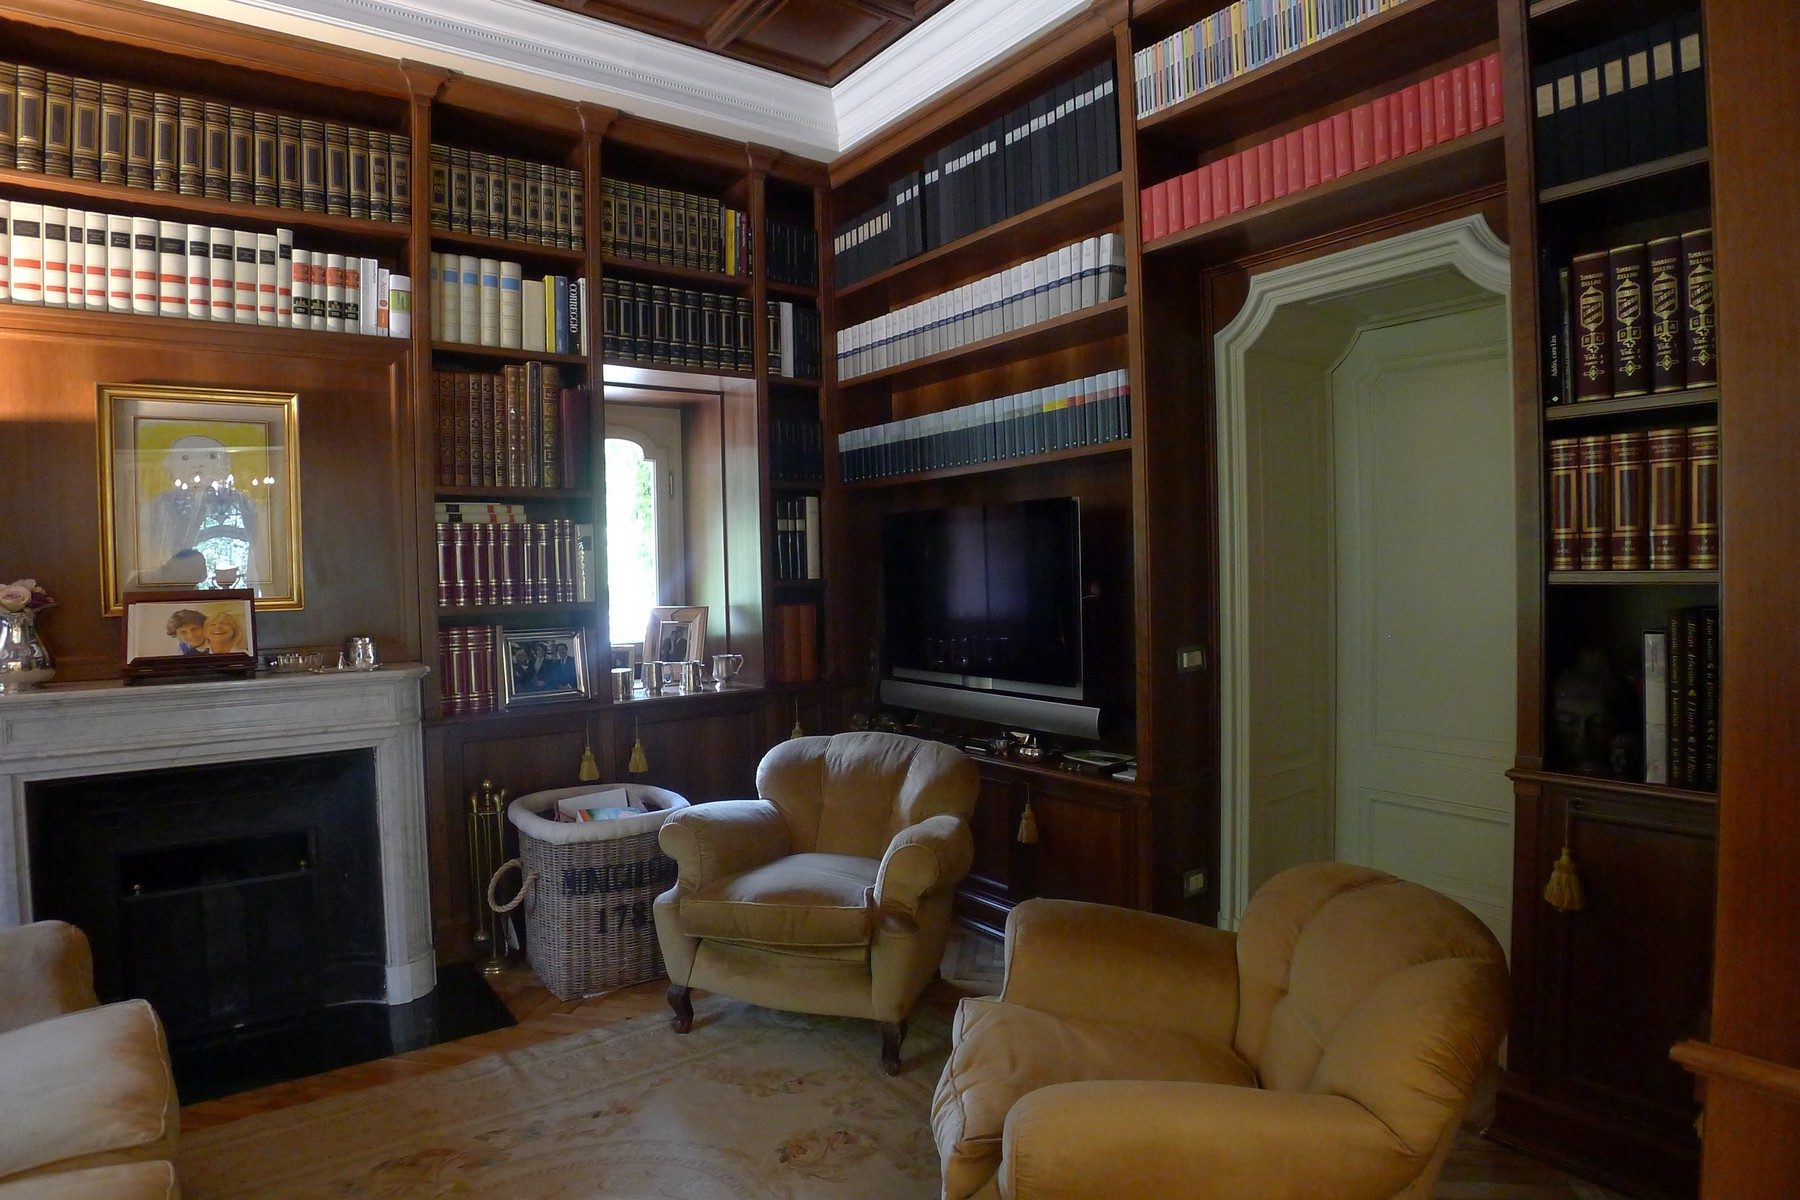 Additional photo for property listing at An exquisite villa on the ourskirts of of Varese via dei Campigli Varese, Varese 21100 Italien